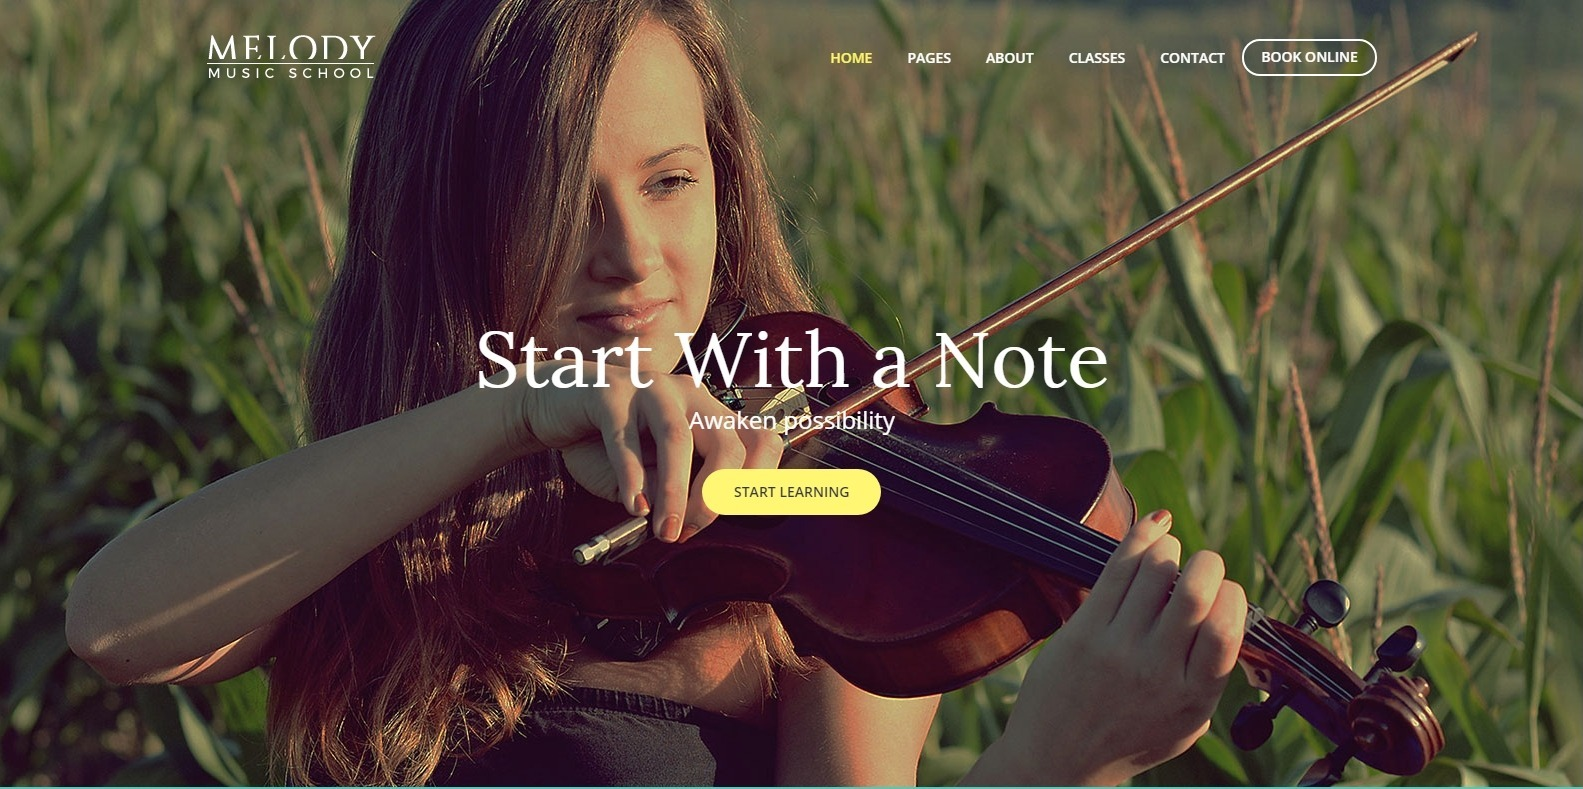 melody-html-music-website-template